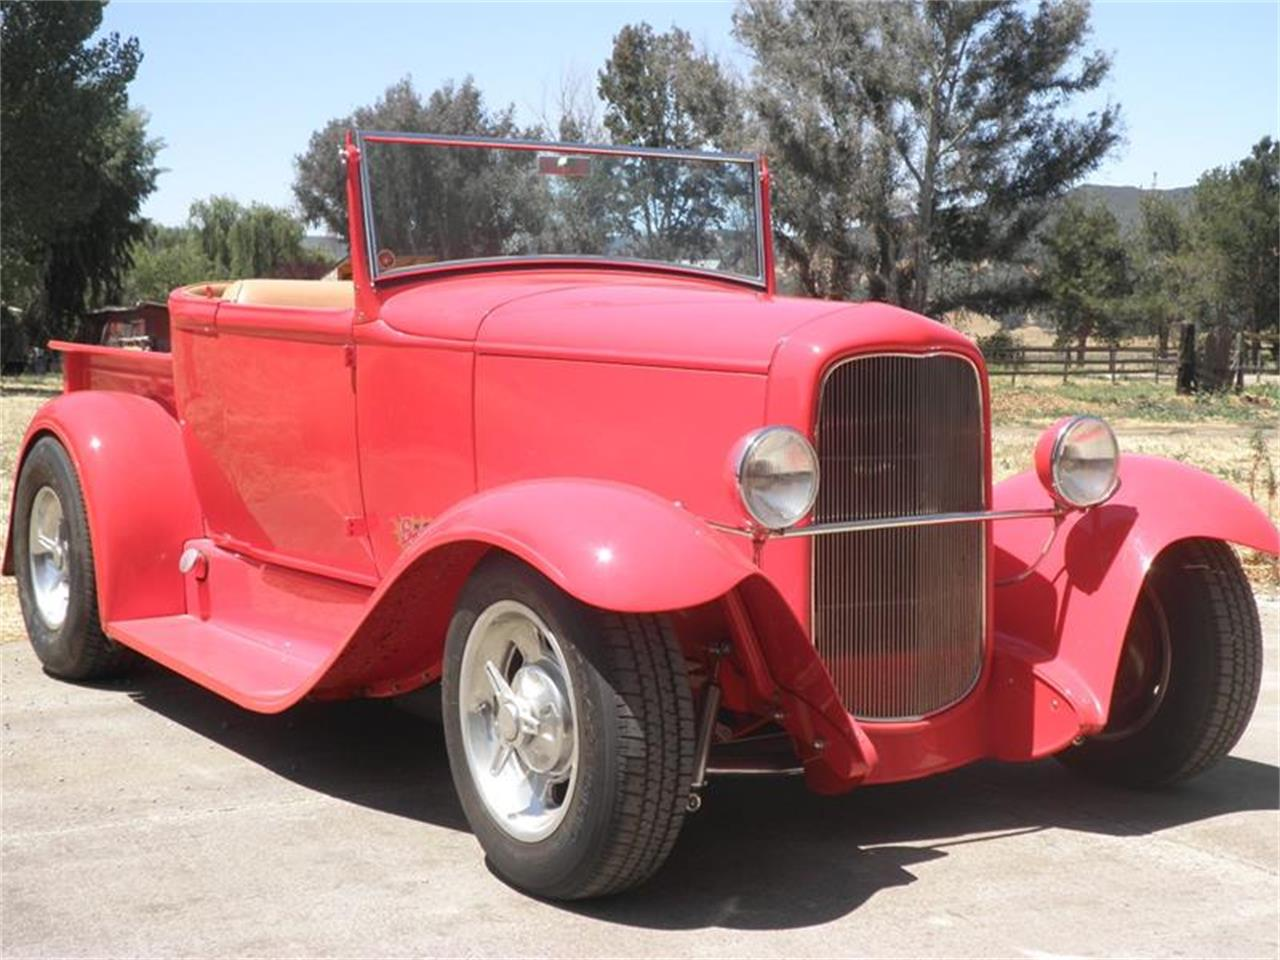 Large Picture of Classic '31 Ford Roadster located in California - $45,000.00 - F36W